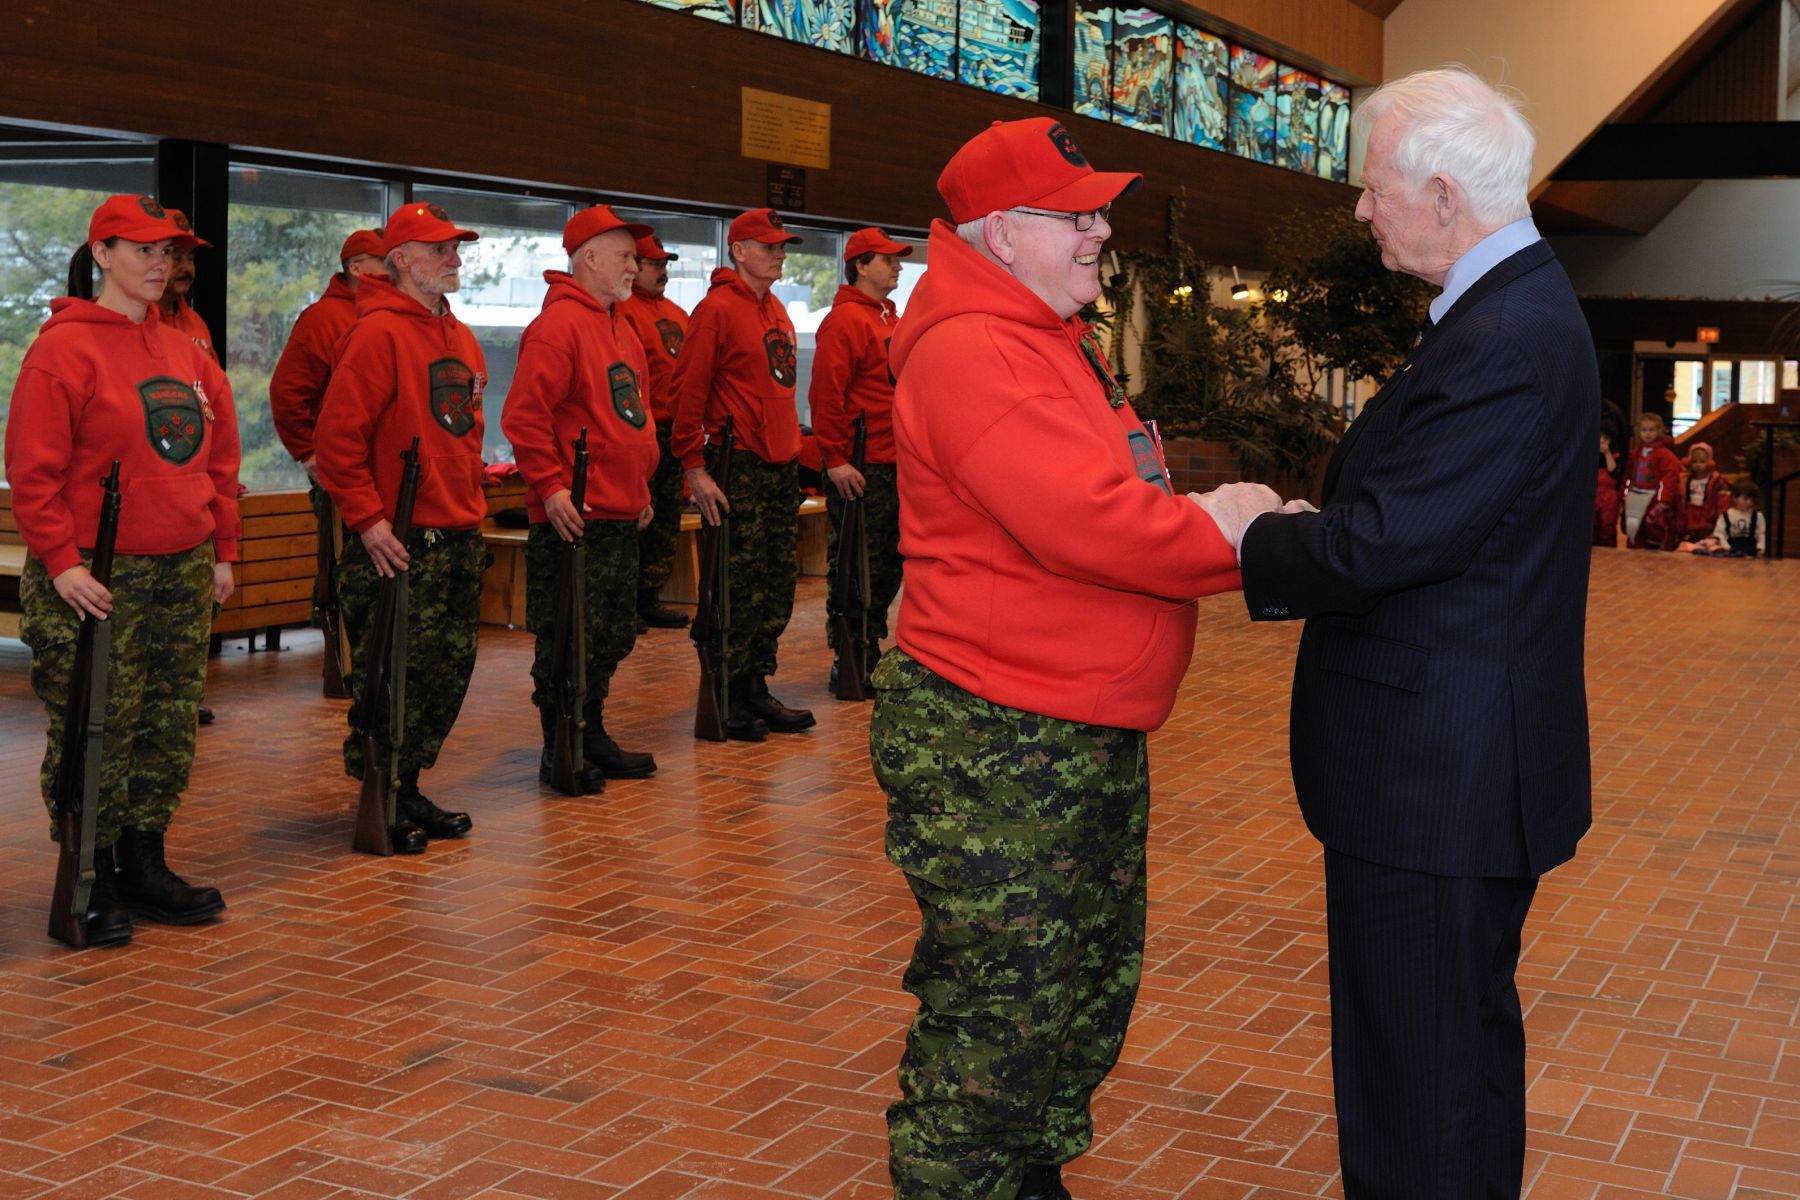 His Excellency took the time to speak to some members of the Canadian Rangers.